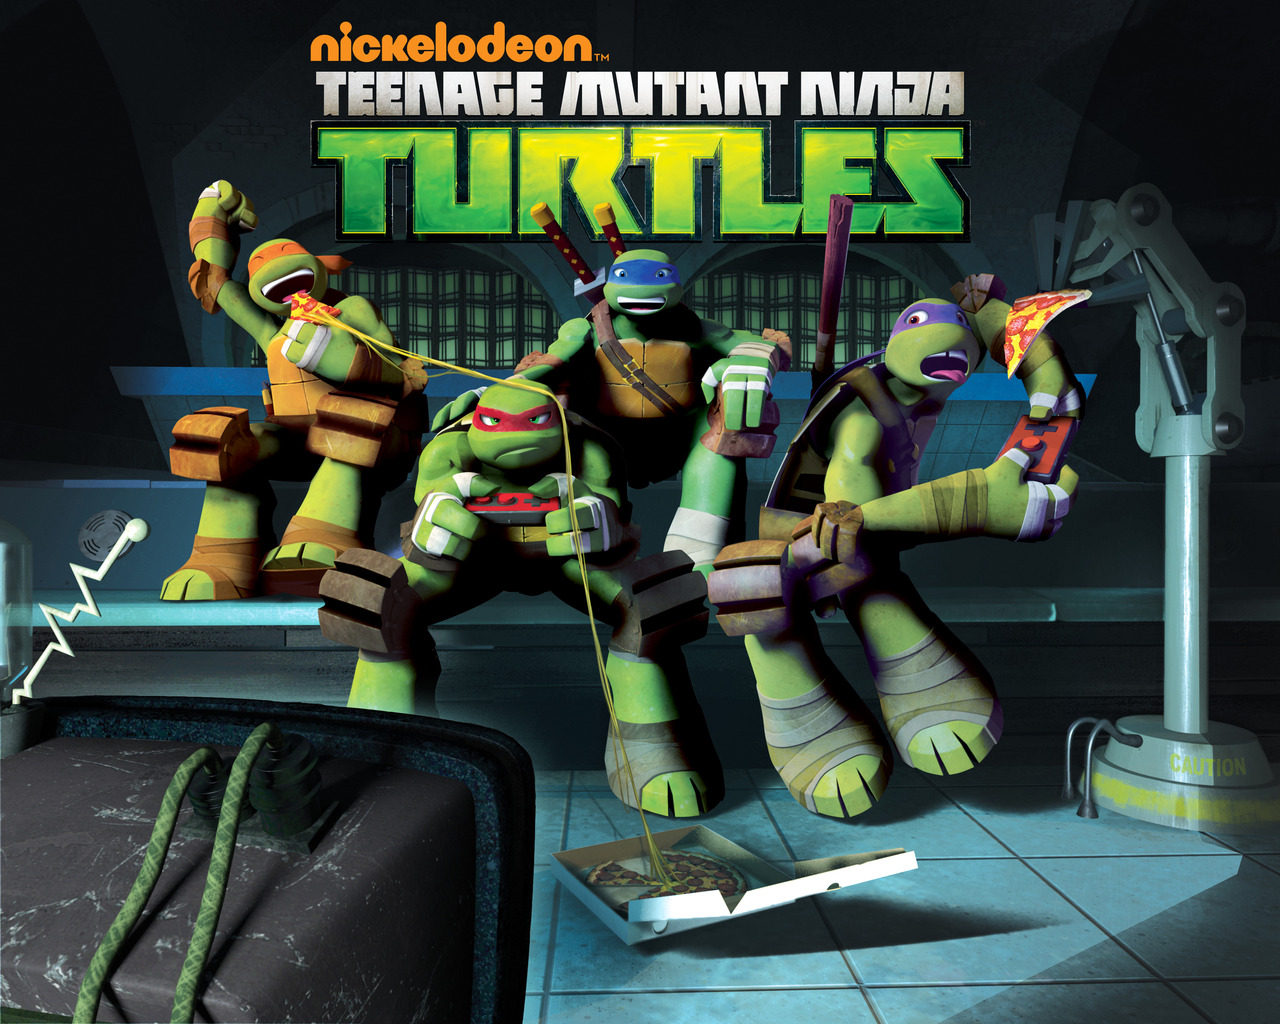 Teenage Mutant Ninja Turtles 2012 Neuralizer Toy : Teenage mutant ninja turtles tv series tmnt wiki